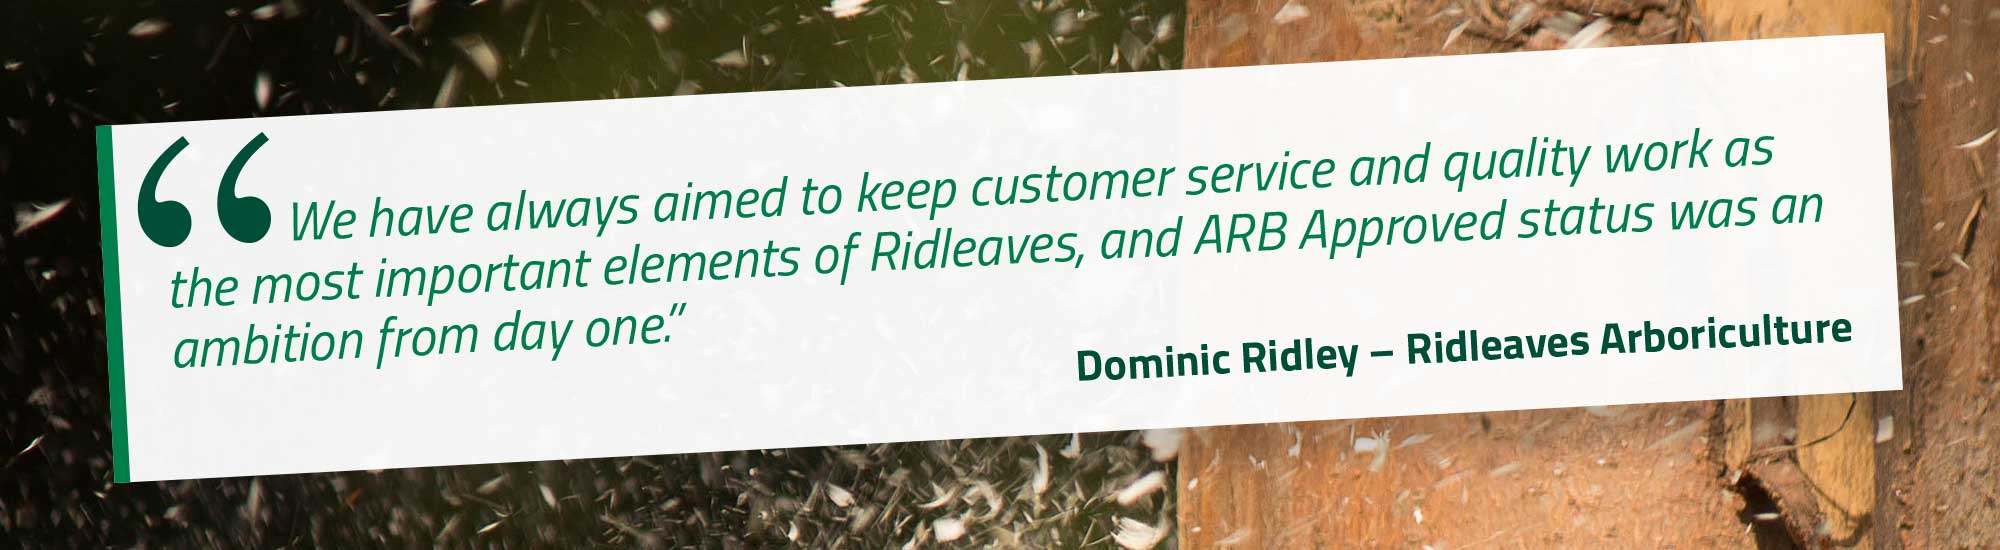 We have always aimed to keep customer service and quality work as the most important elements of Ridleaves, and ARB Approved status was an ambition from day one. Dominic Ridley – Ridleaves Arboriculture